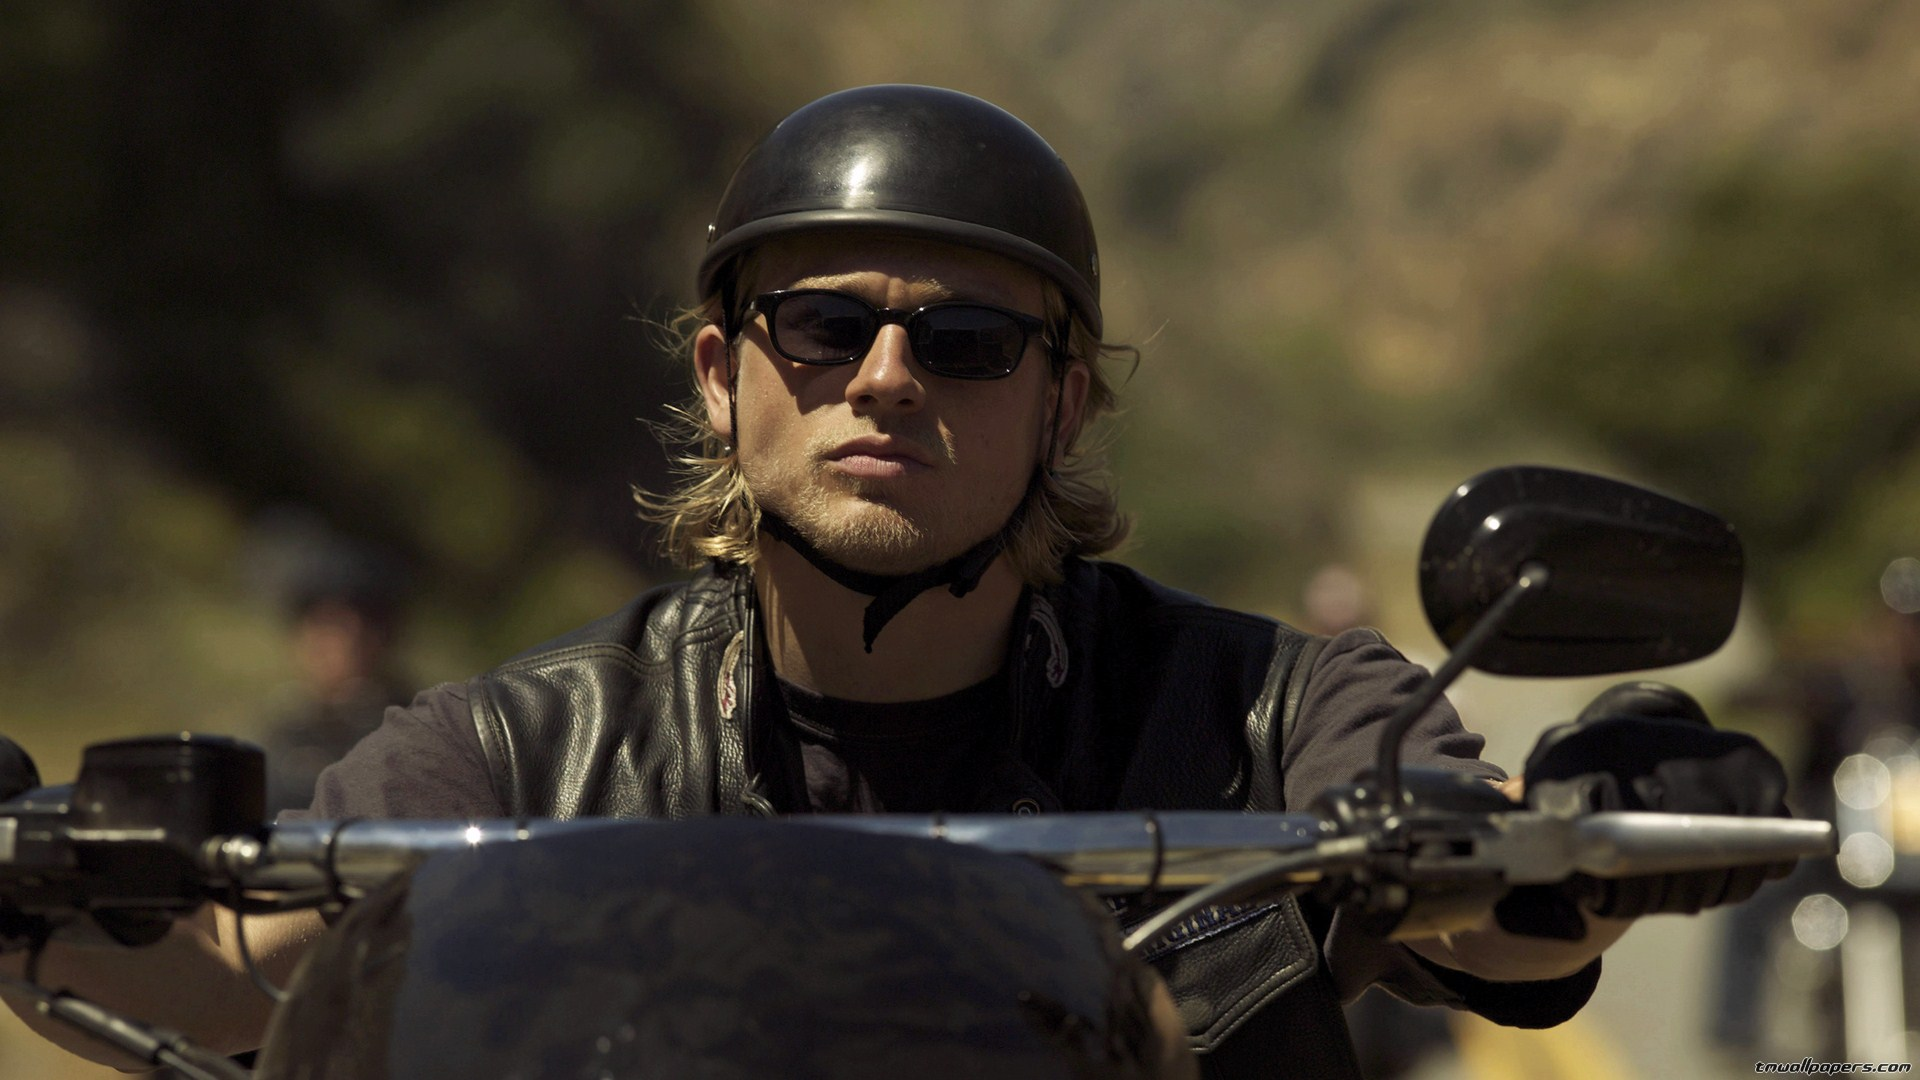 Papa's Goods: The Jax Teller Survival Guide for 'Sons of ...